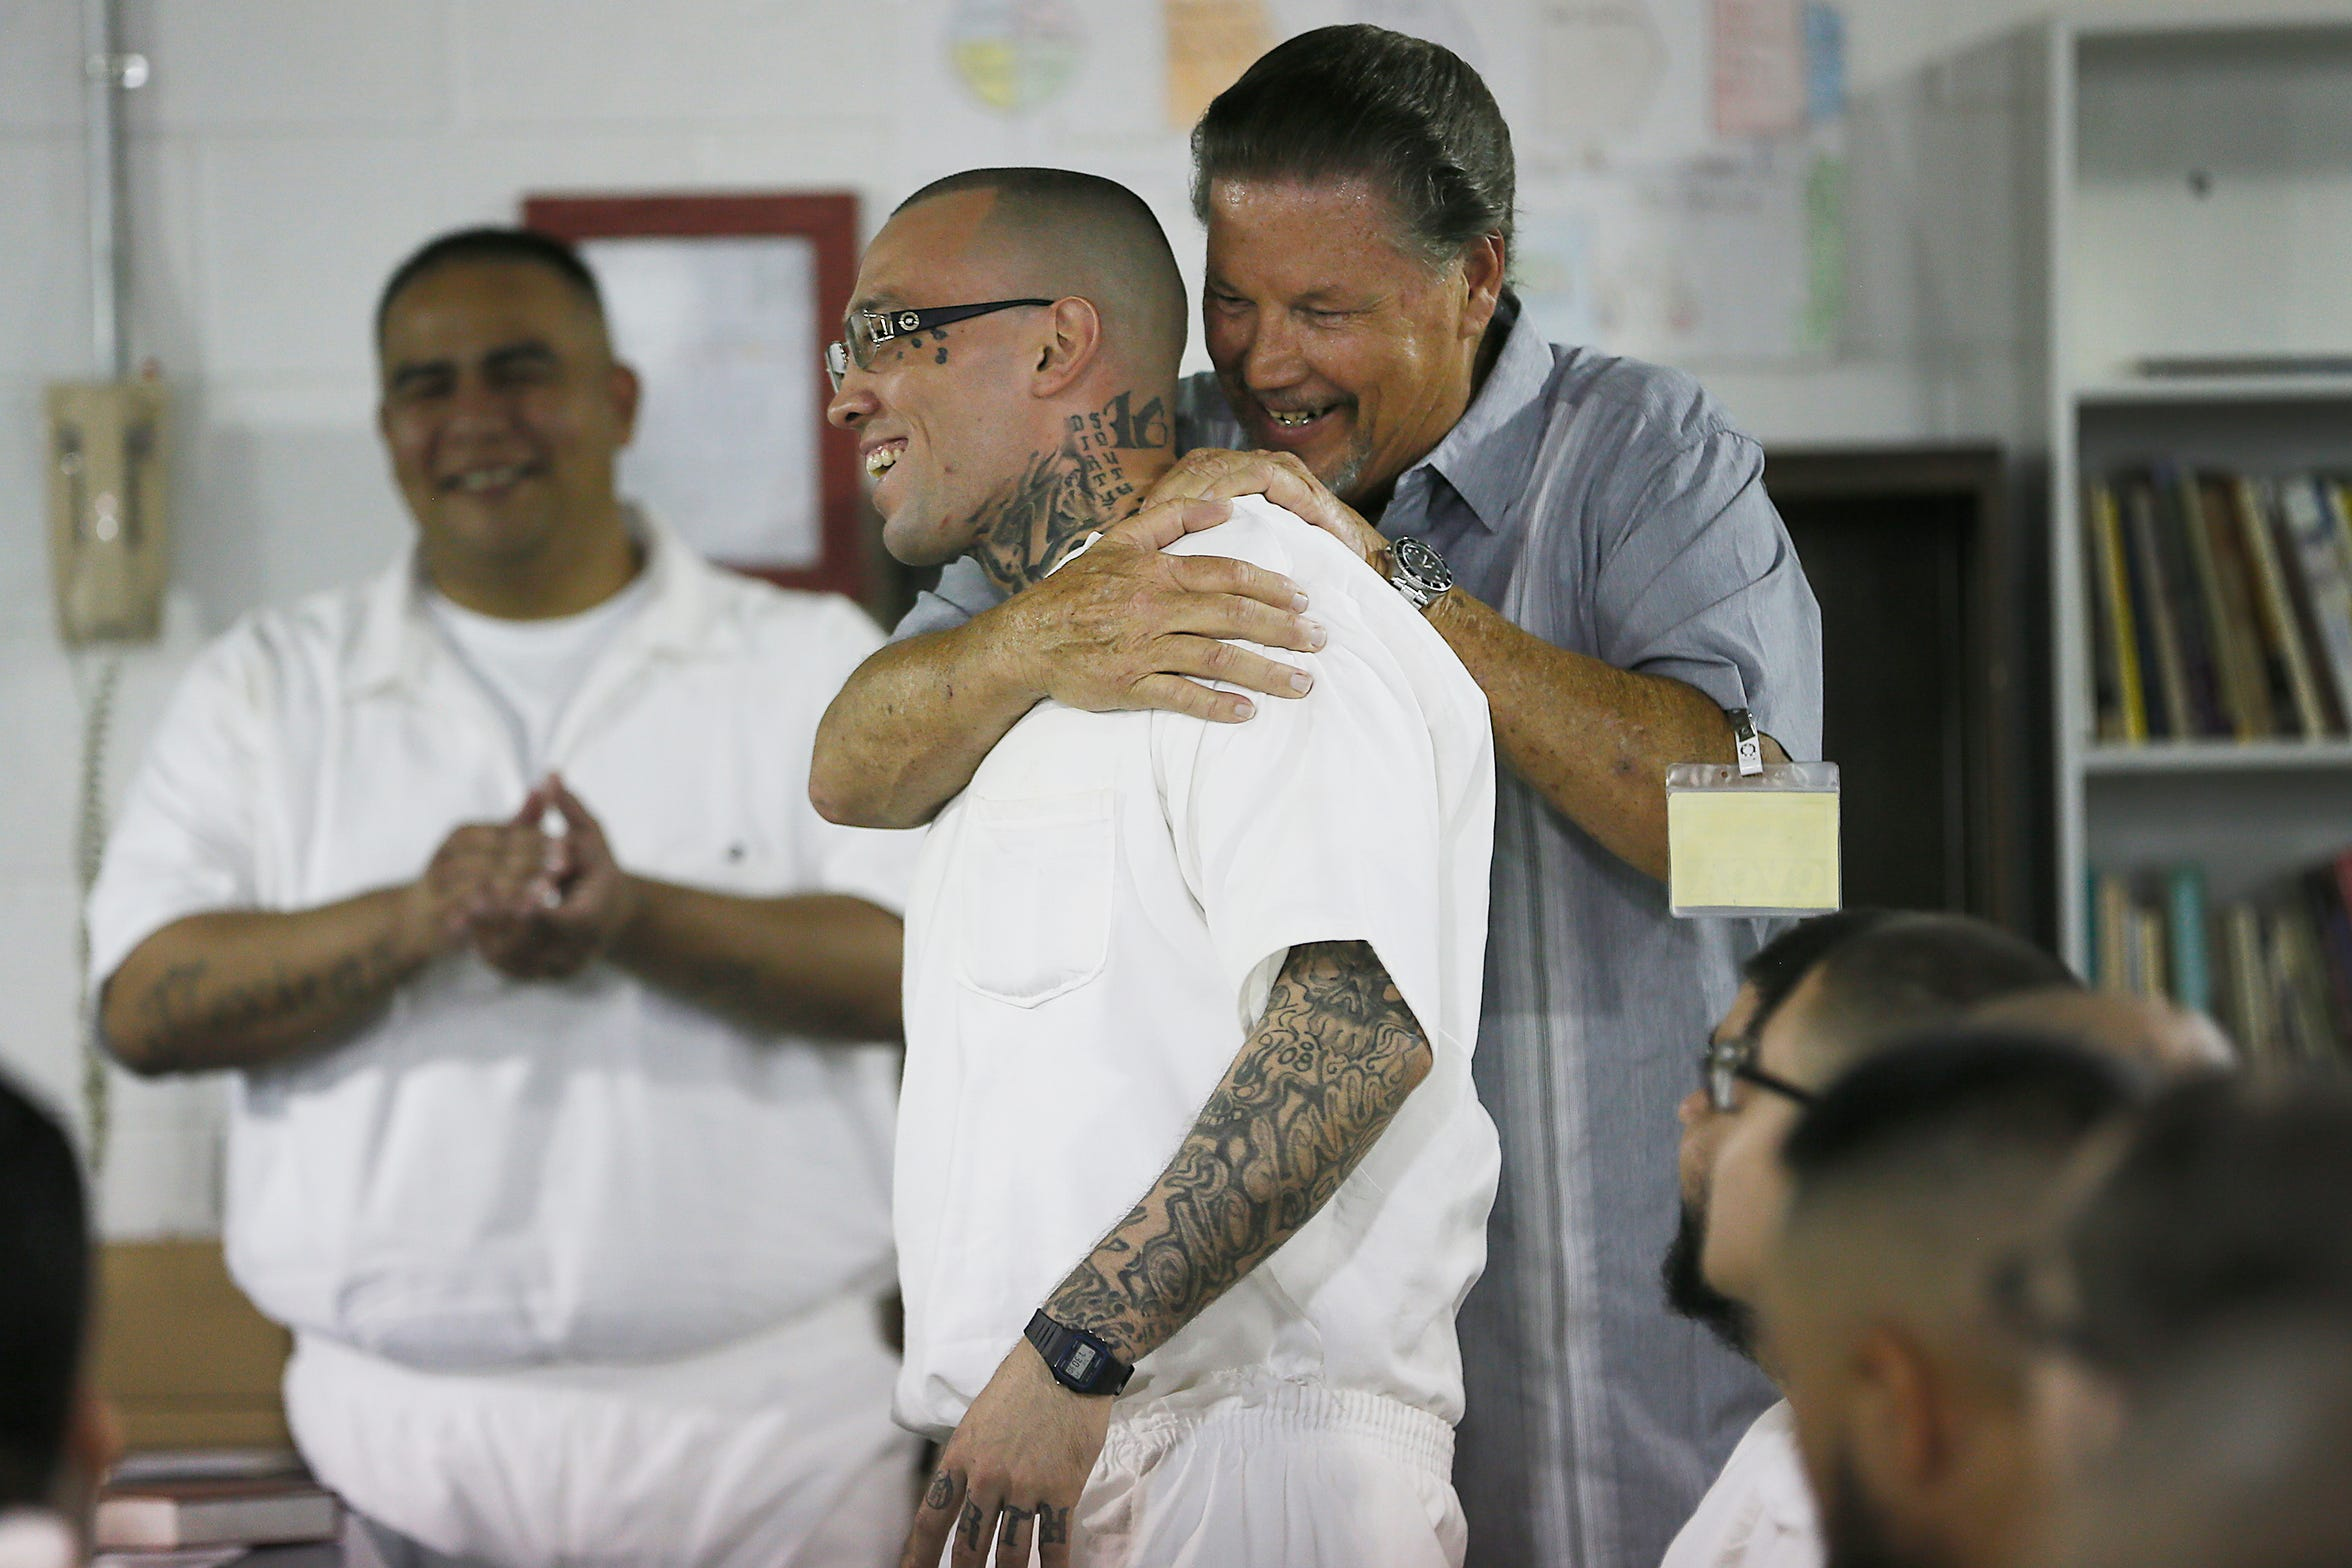 Senior pastor at Rogelio Sanchez State Jail Greg Swann gives David Mackey a hug after his last church service Sunday, July 14, in El Paso.